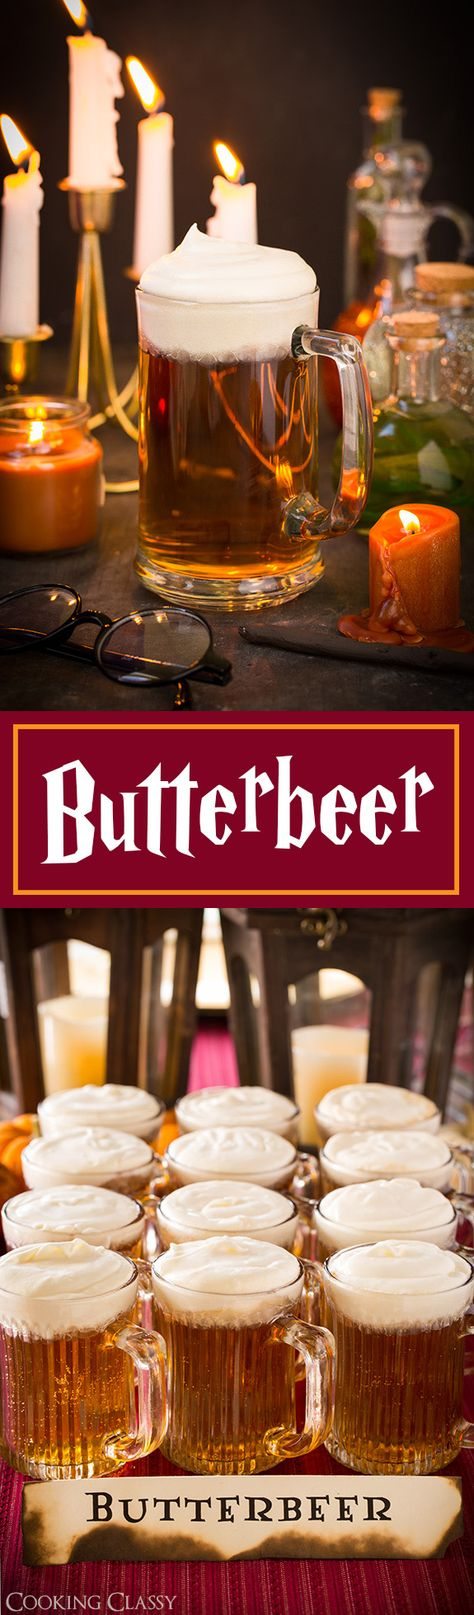 Butterbeer Recipe and a Harry Potter Party - only 5 ingredients and so easy to make! Not so rich, sweet and heavy like some Butterbeer recipes, this one is my favorite!